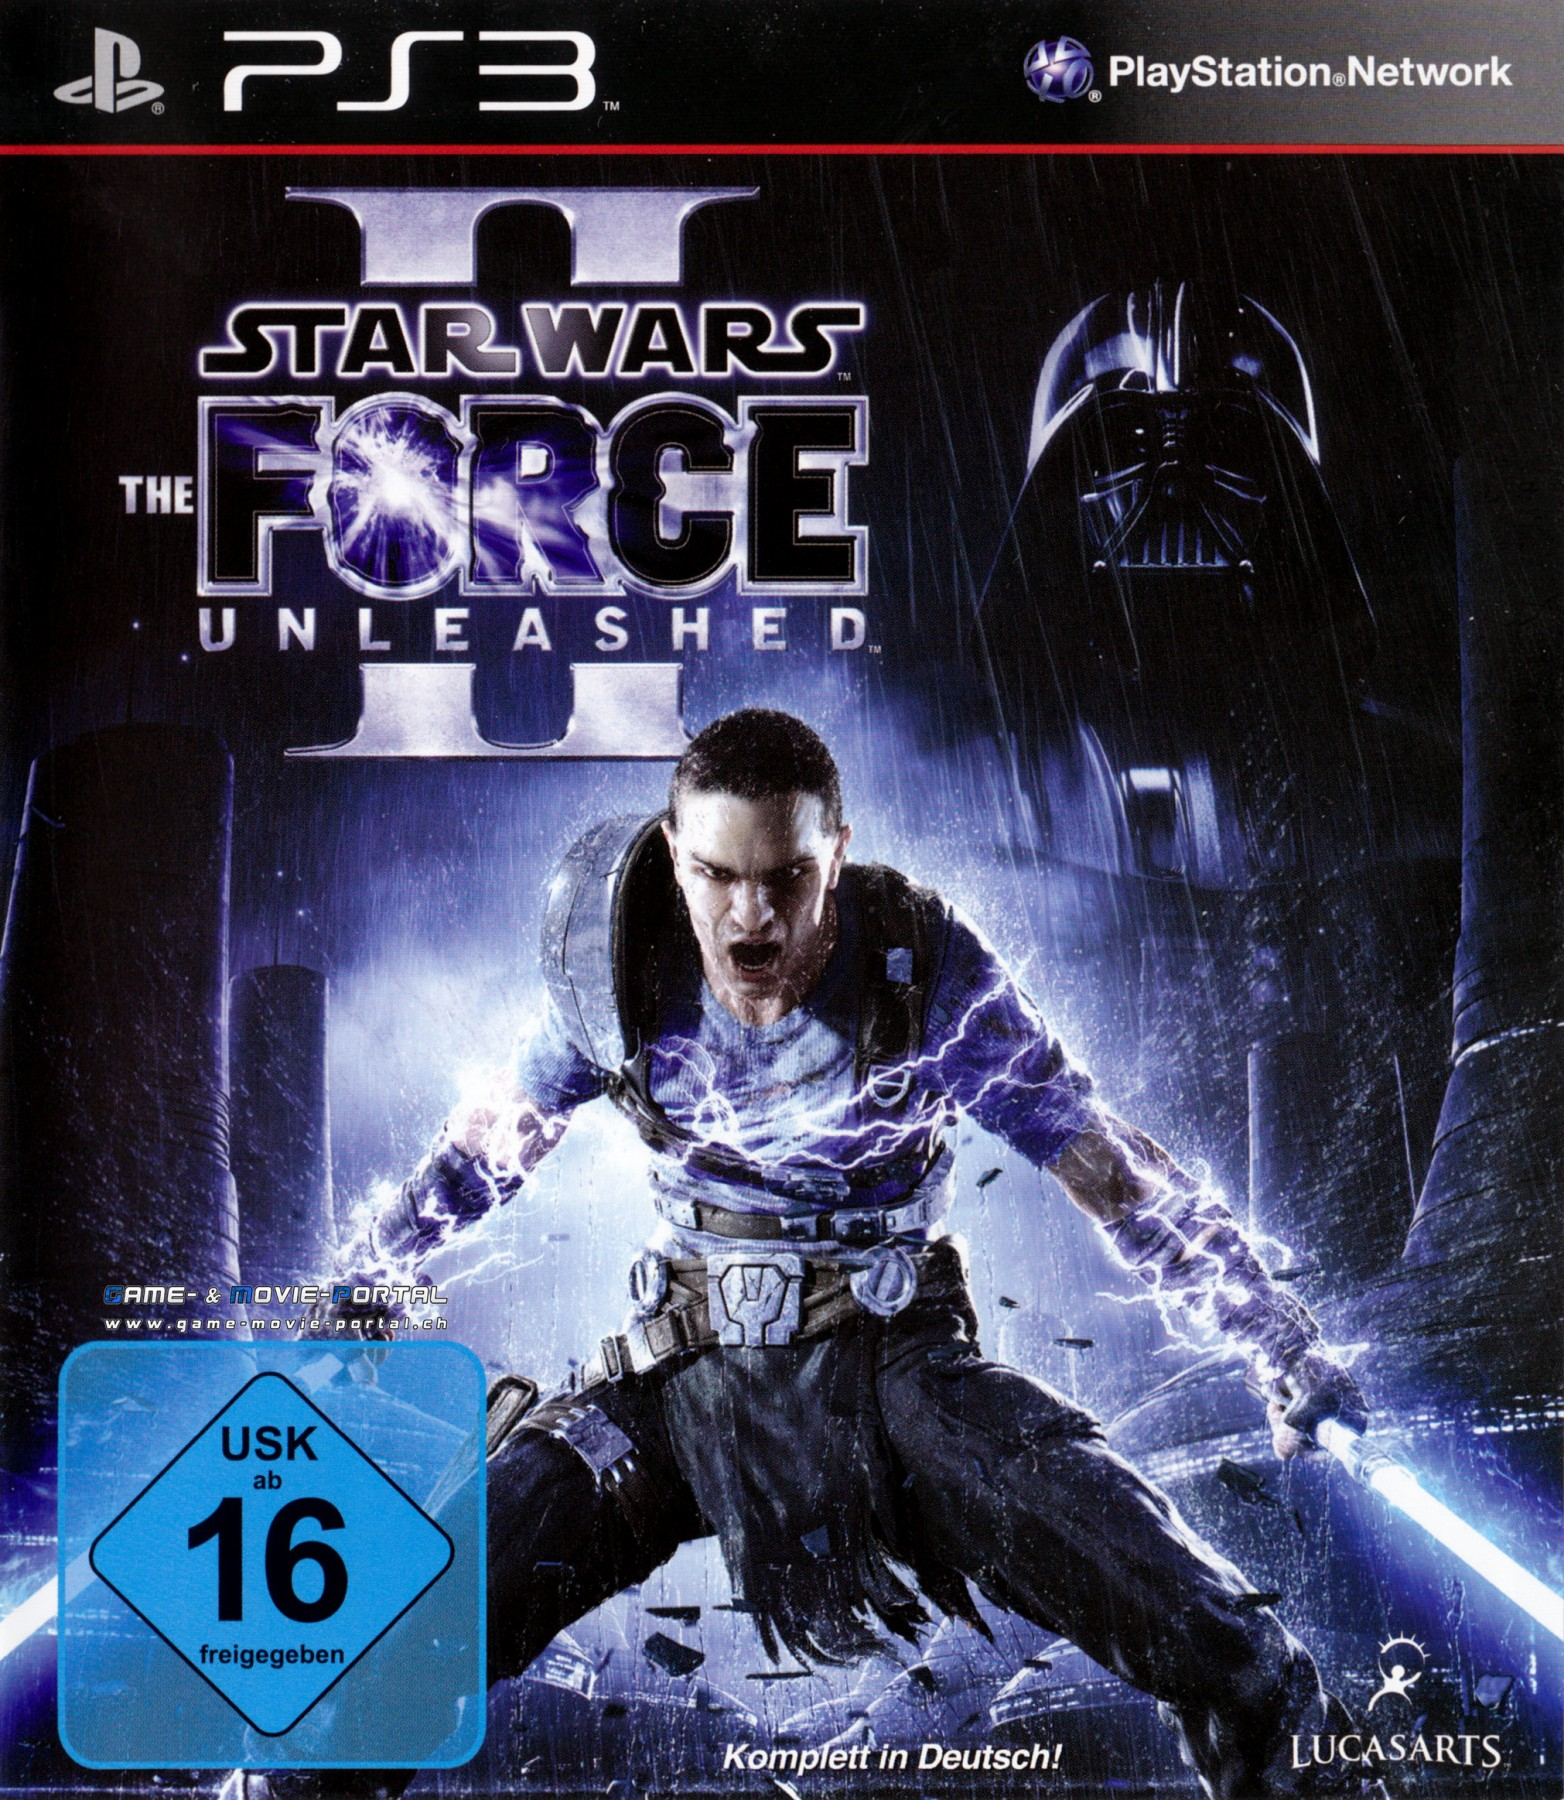 Star Wars The Force Unleashed II | Star Wars The Force Unleashed 2 б/в PS3